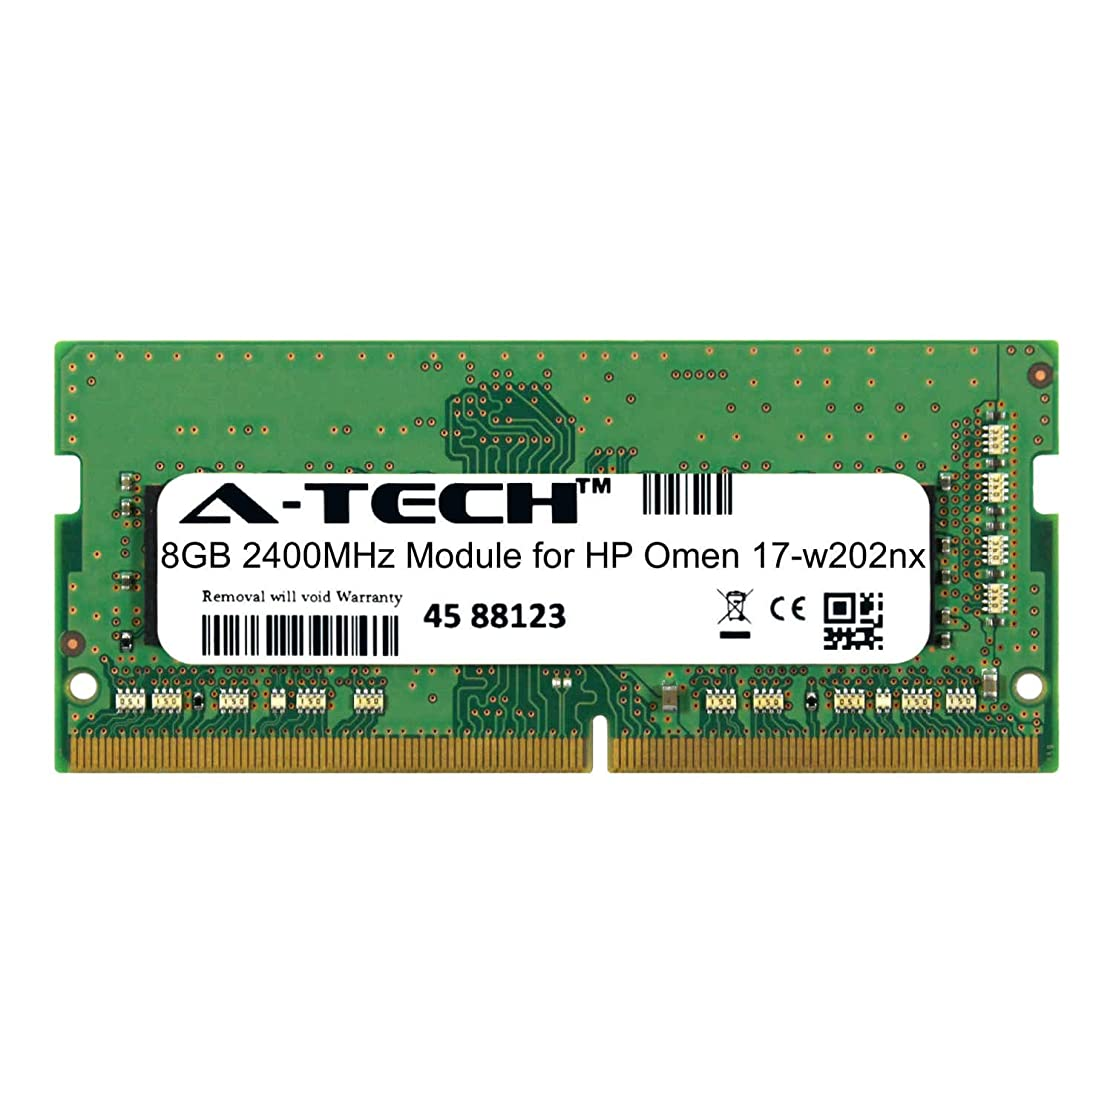 A-Tech 8GB Module for HP Omen 17-w202nx Laptop & Notebook Compatible DDR4 2400Mhz Memory Ram (ATMS281615A25827X1)